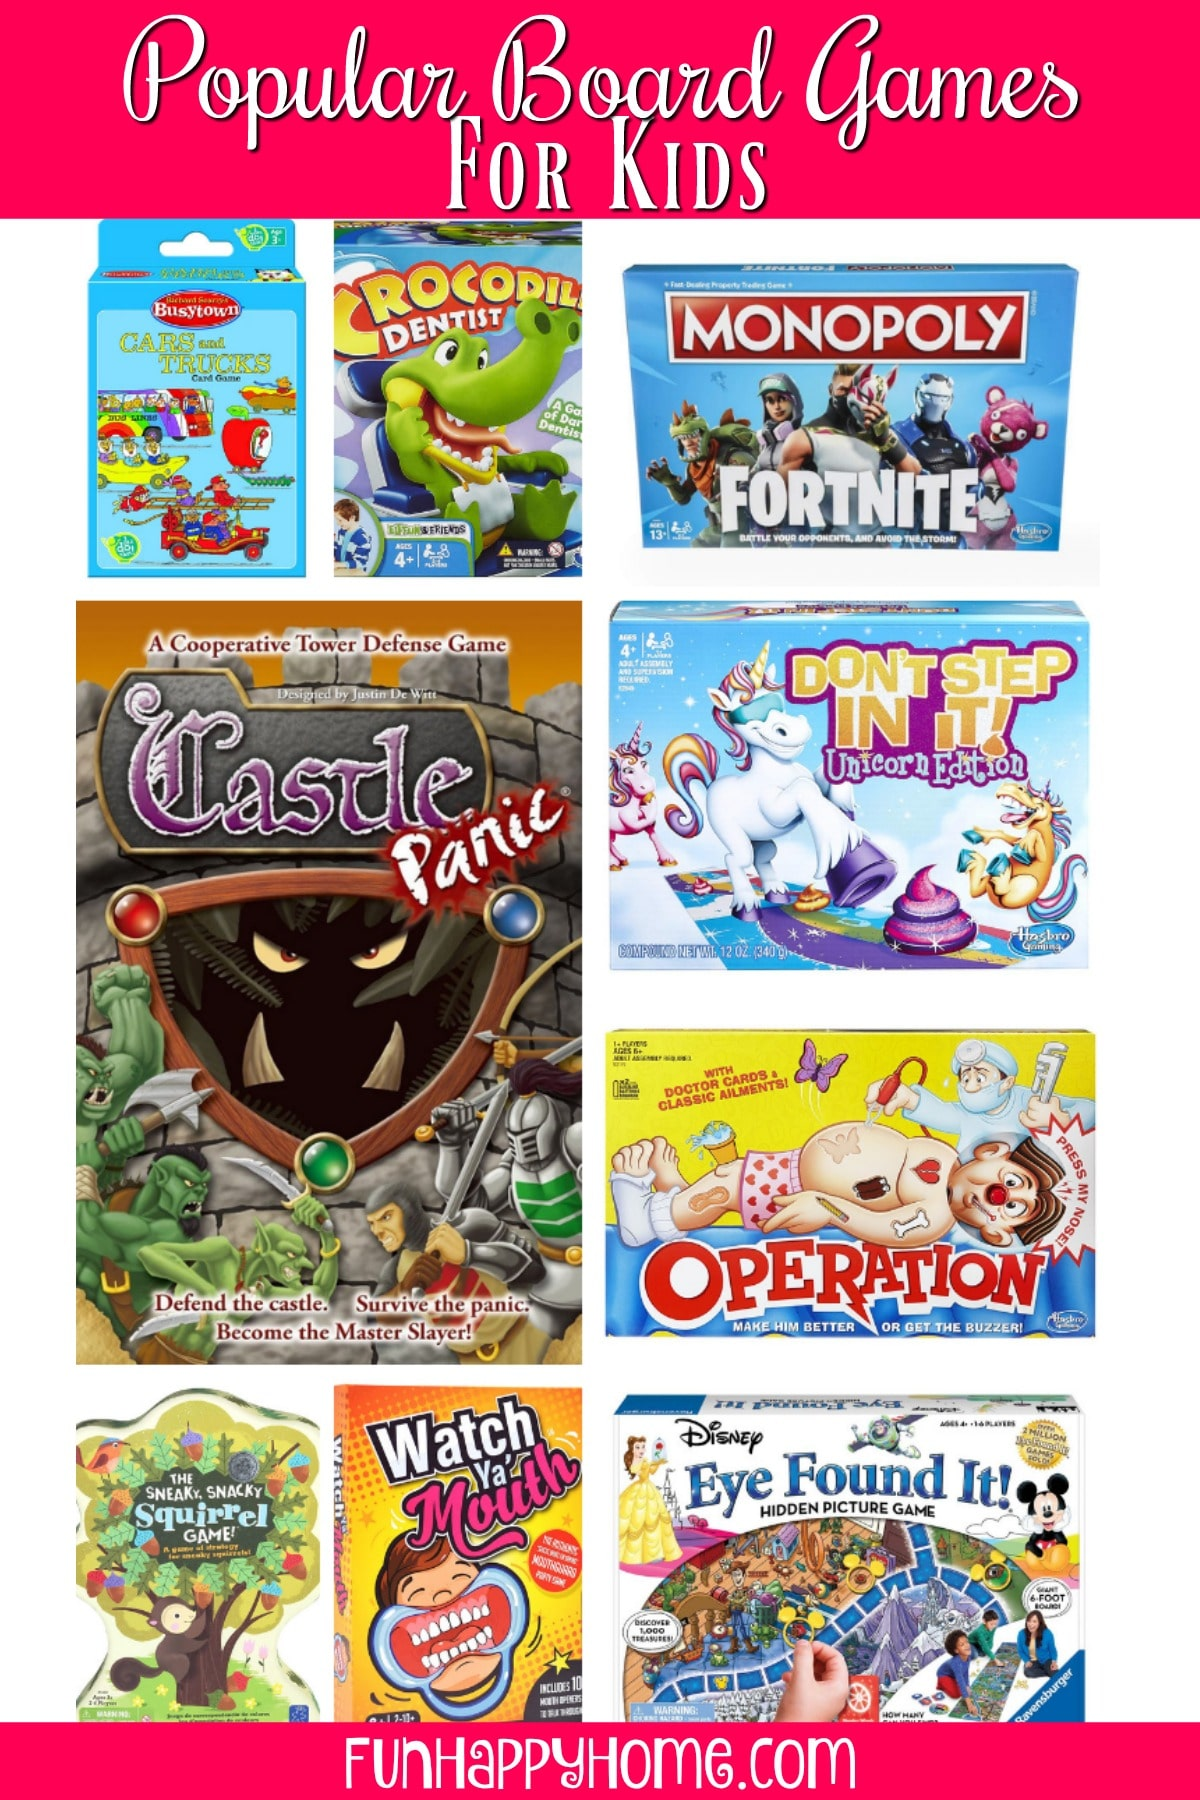 Popular Board Games for Kids